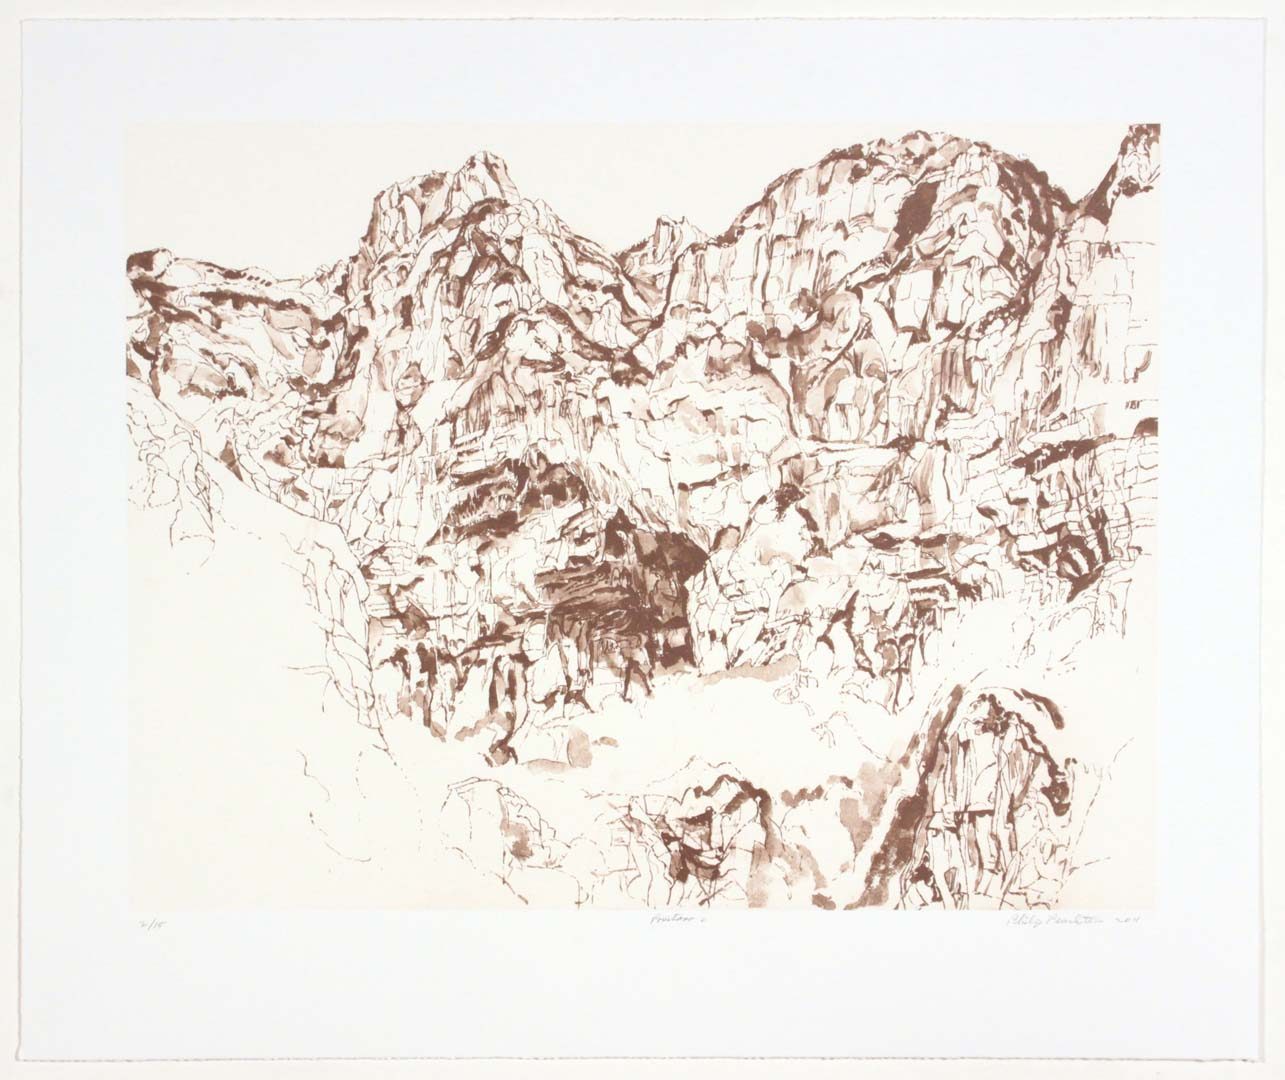 2011 Positano #2 Lithograph on Paper 20.625 x 24.625